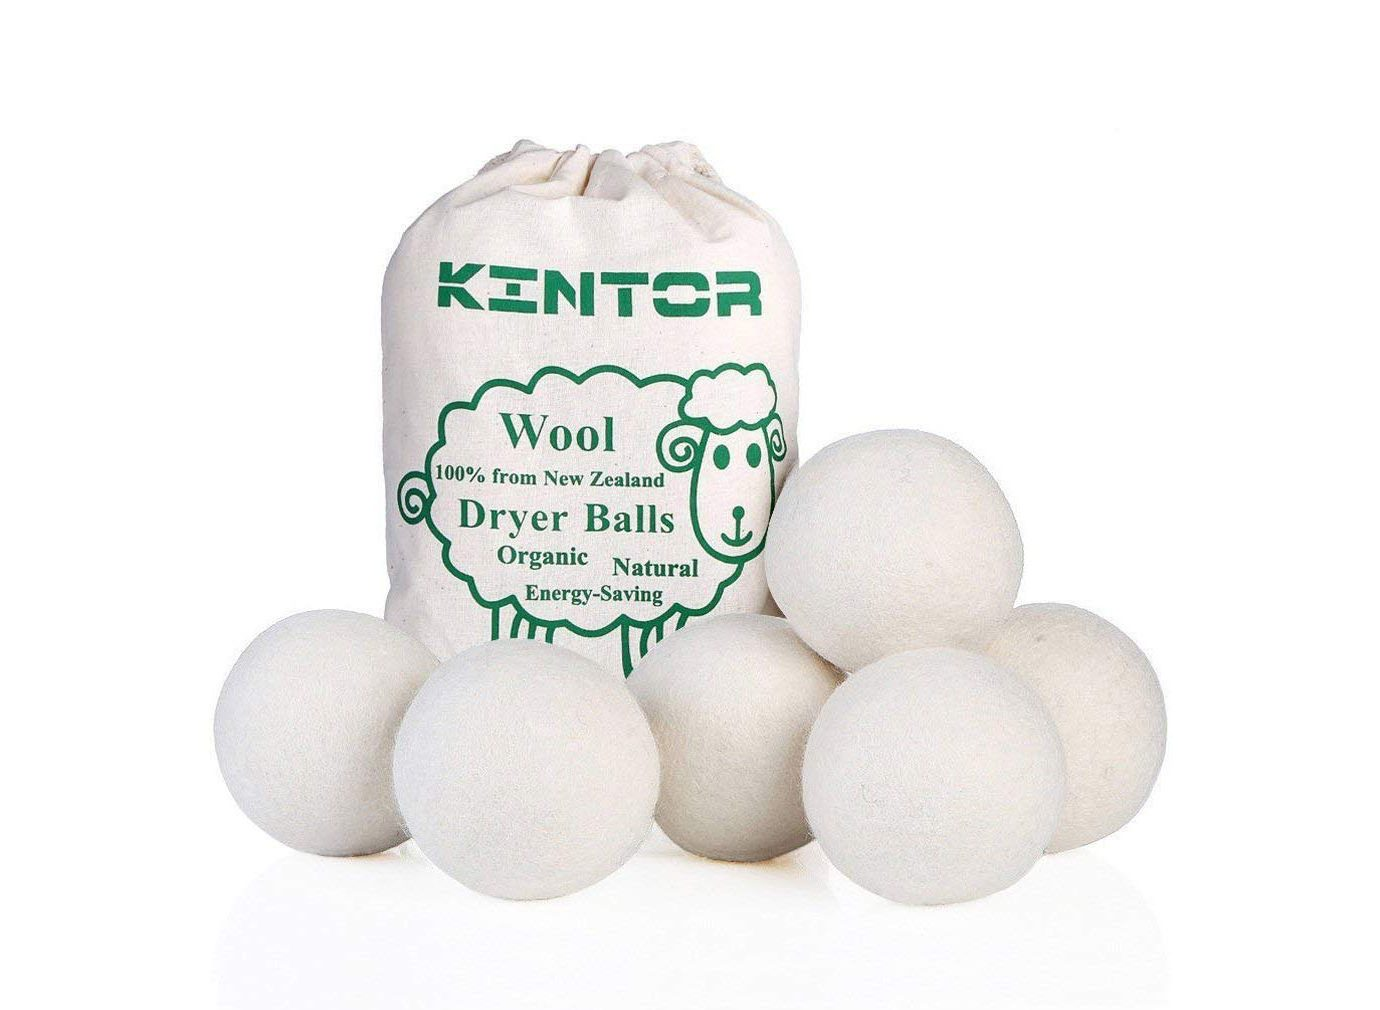 KINTOR Wool Dryer Balls